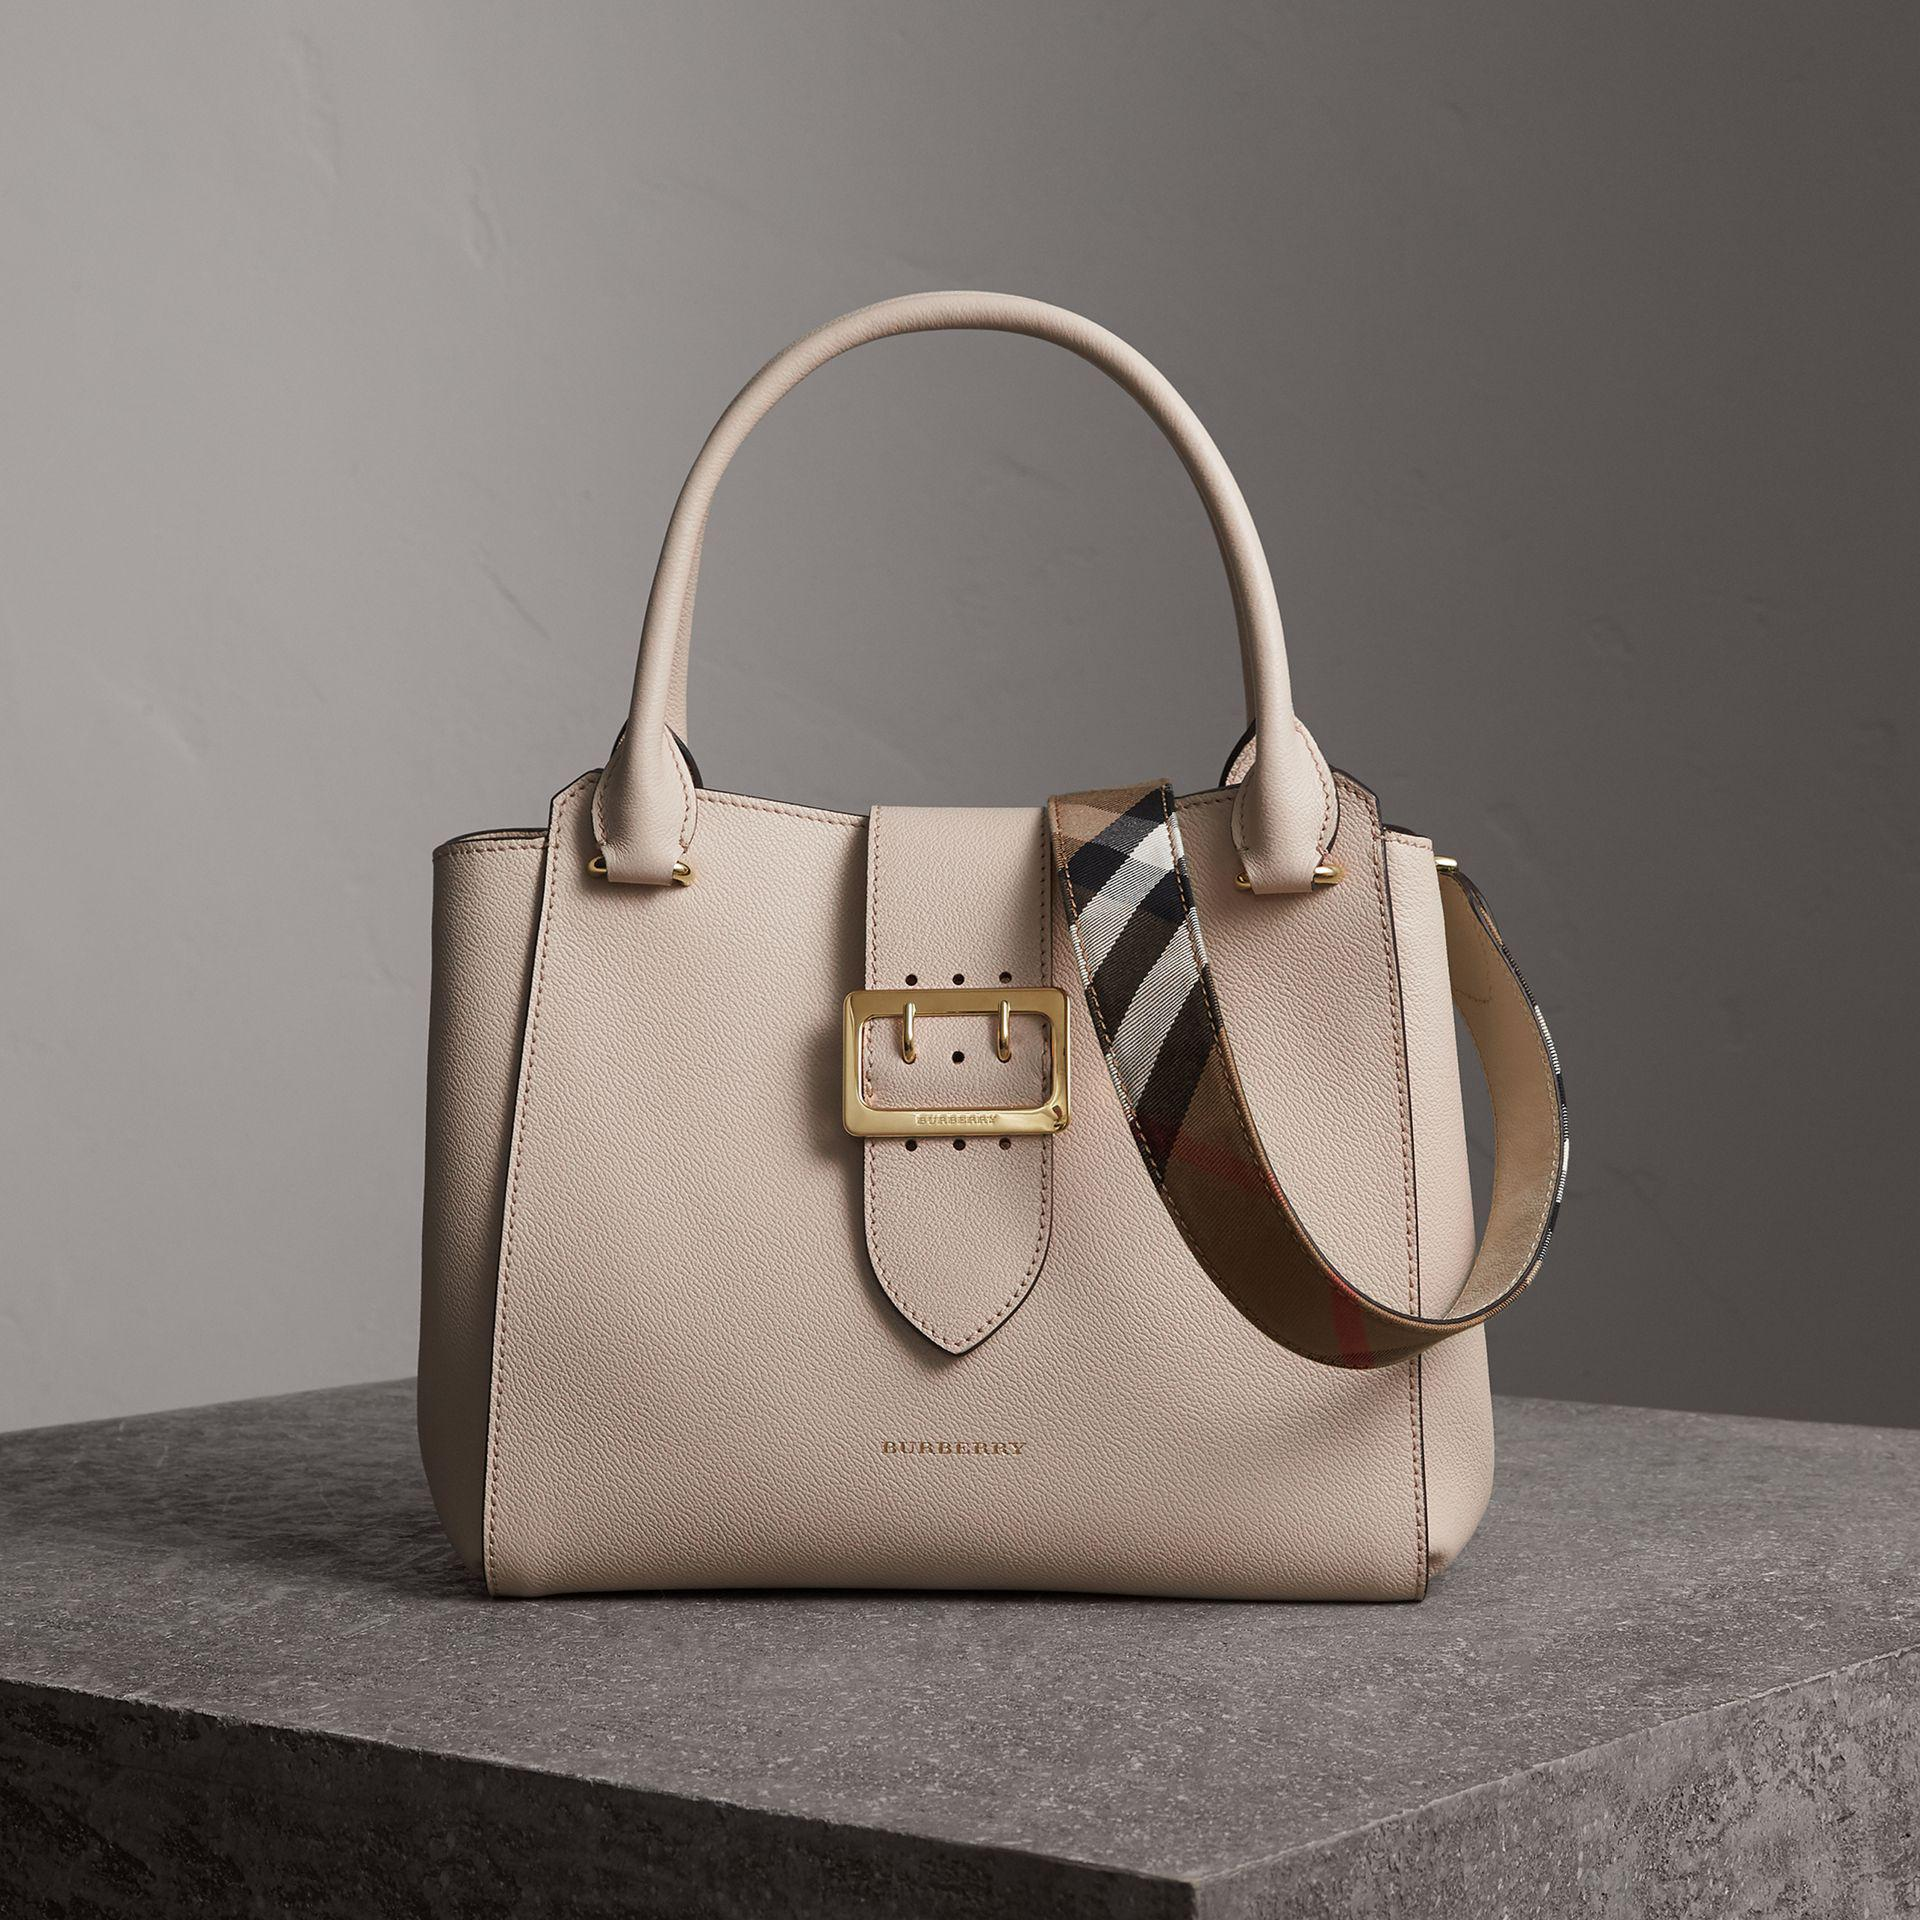 58f1c8ac8a678 Burberry The Medium Buckle Tote In Grainy Leather Limestone - Lyst